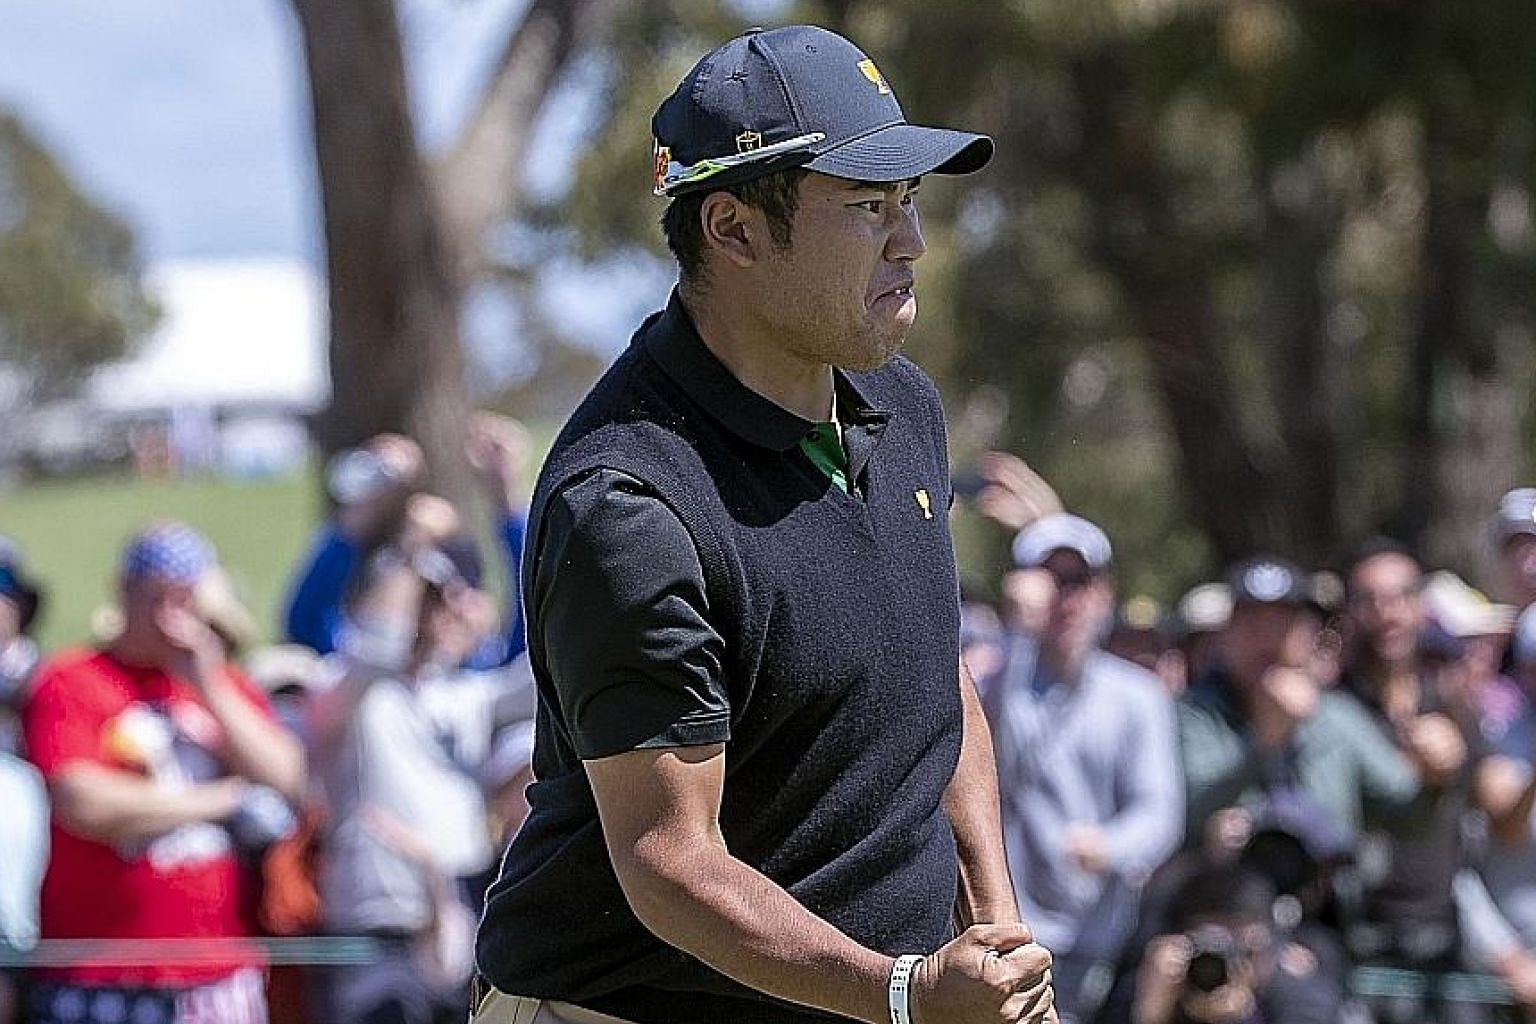 Japanese golfer Hideki Matsuyama pumps his fist after his 25-foot birdie putt on the 17th hole gave him and Taiwanese partner C.T. Pan a 1-up victory over Americans Patrick Reed and Webb Simpson.